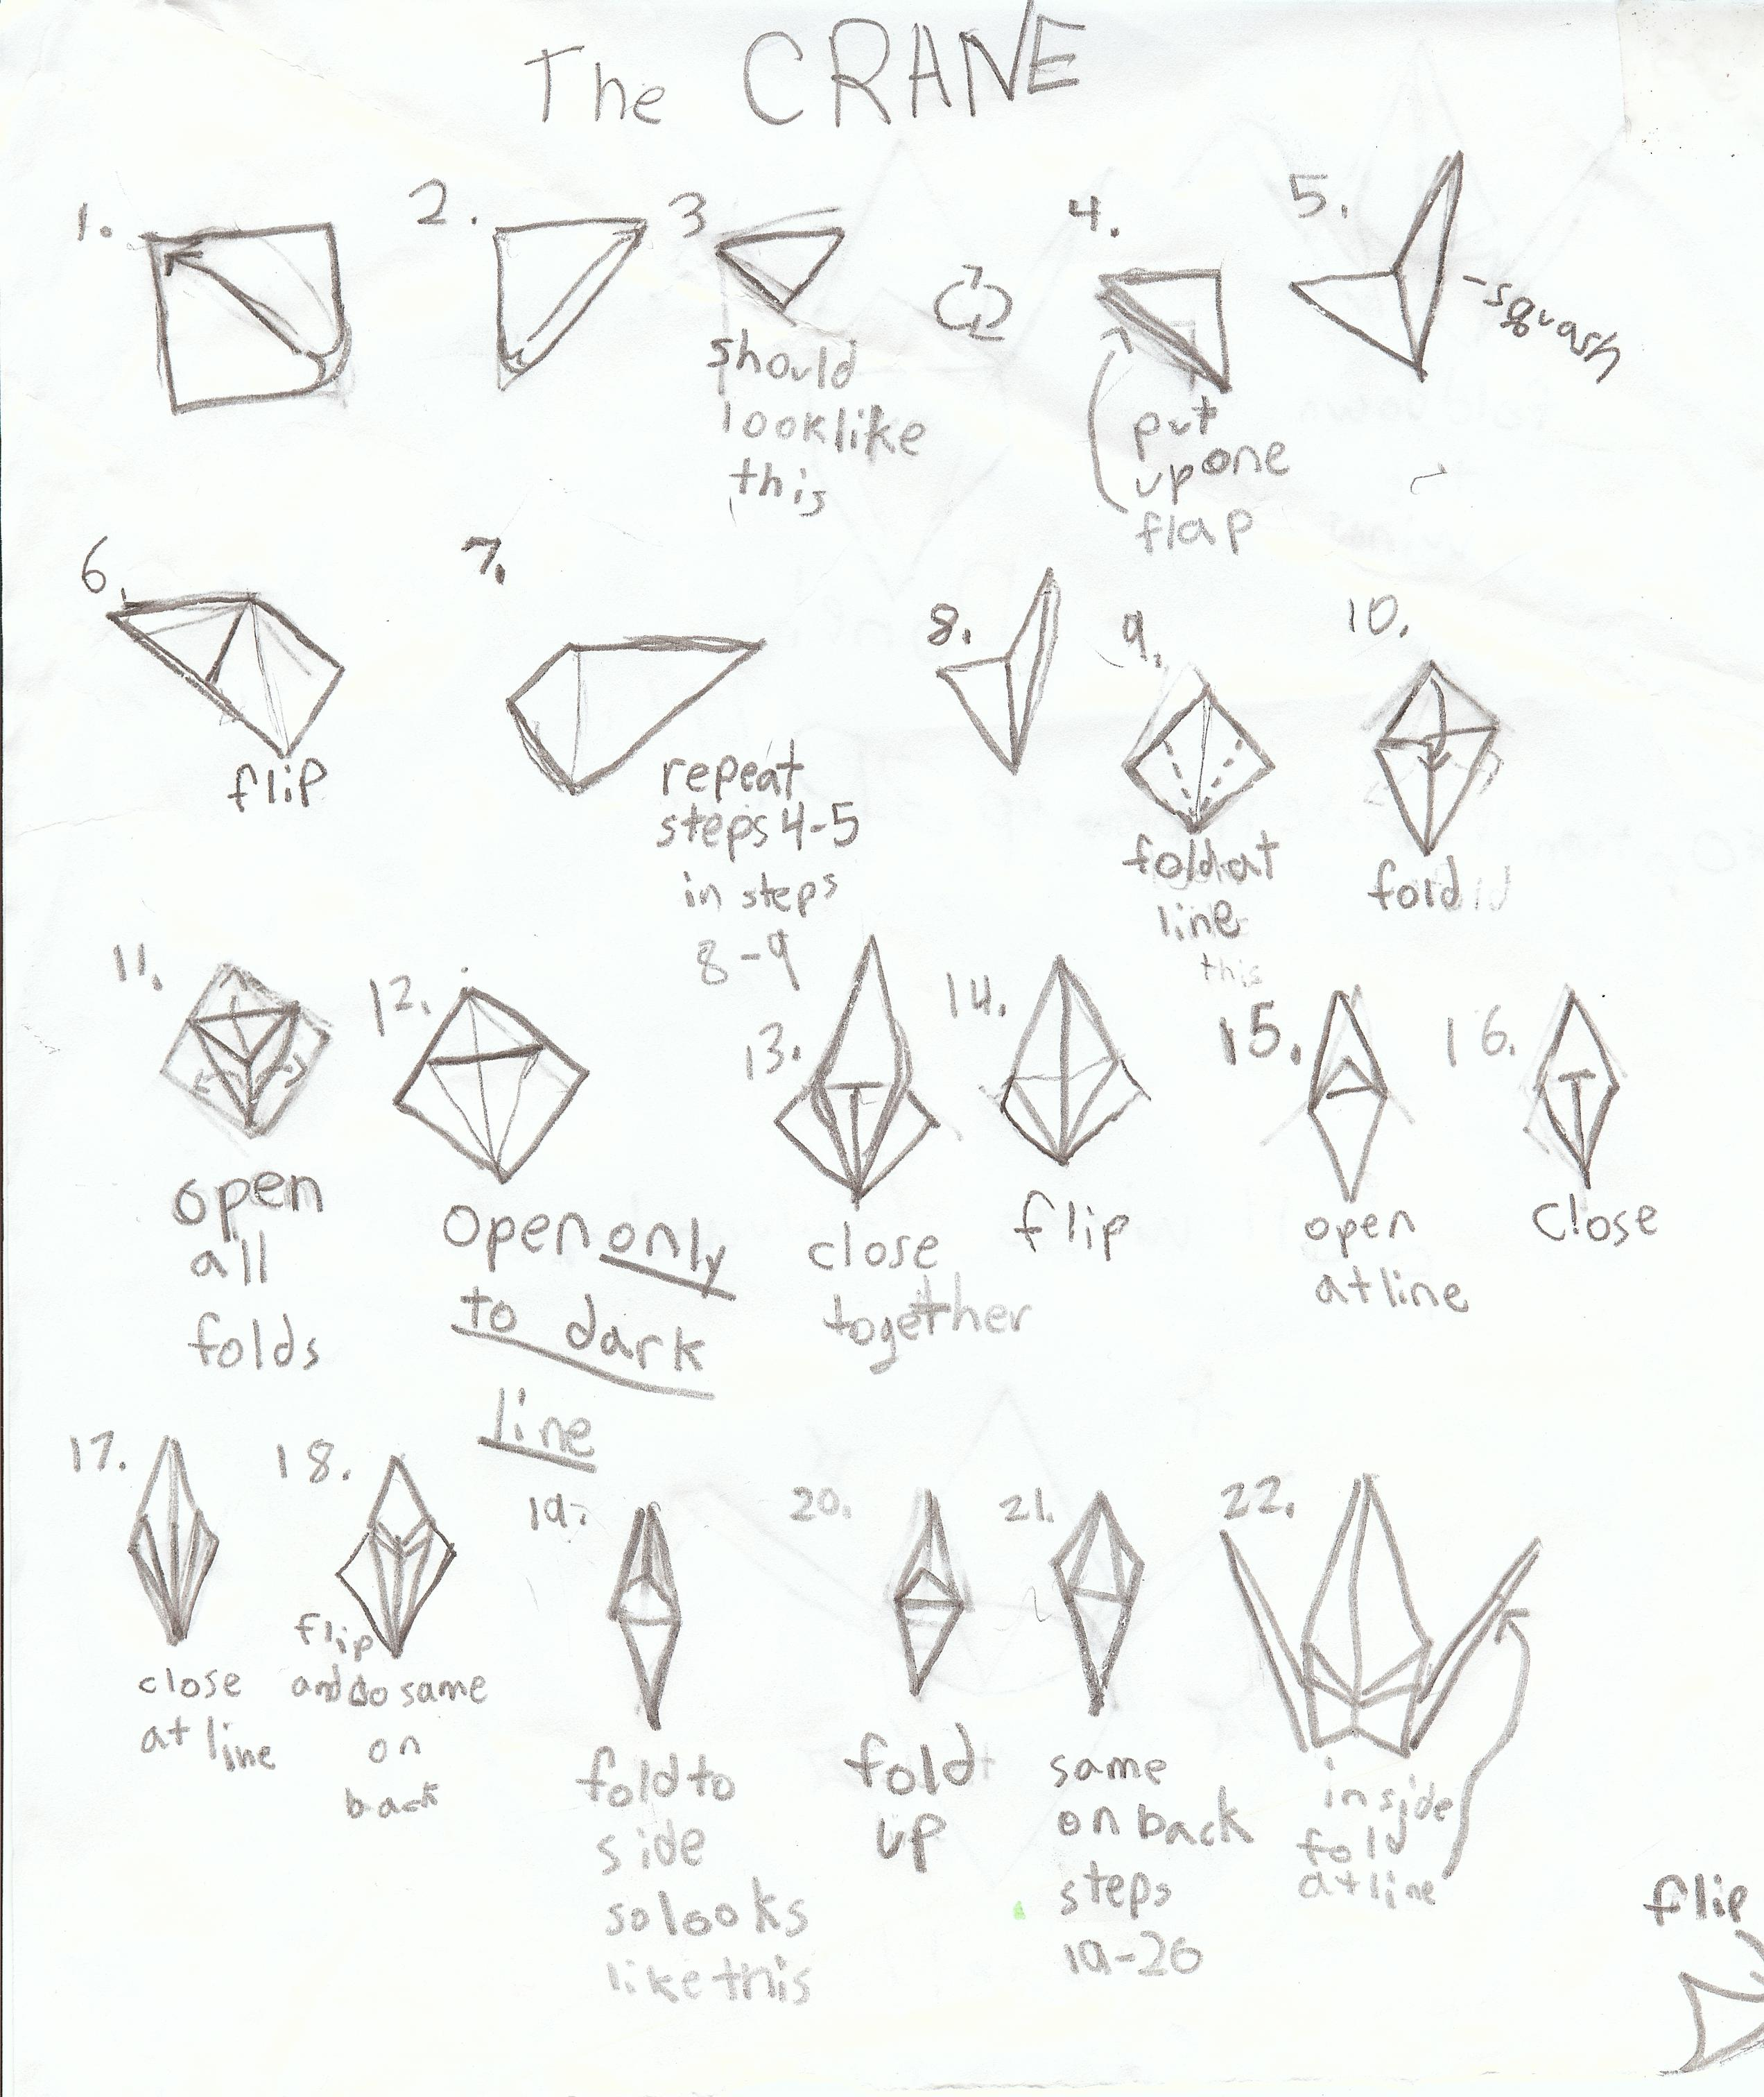 Cool Origami Crane Drawing At Getdrawings Com Free For Personal Use Wiring 101 Capemaxxcnl